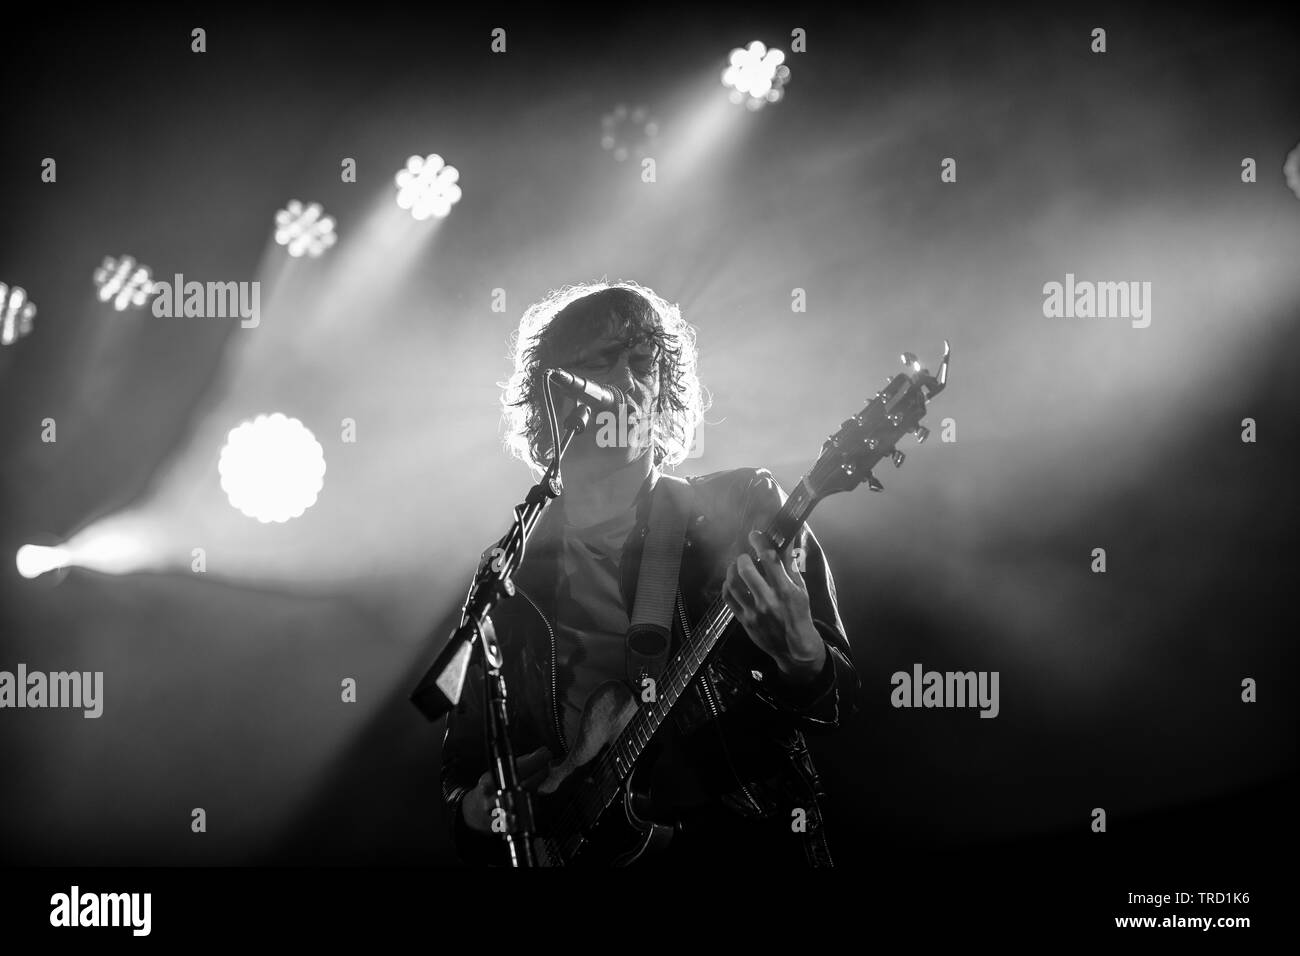 Lead singer and guitarist of Razorlight Johnny Borrell performing at Run Fest Run festival at Bowood House & Gardens, Wiltshire. - Stock Image